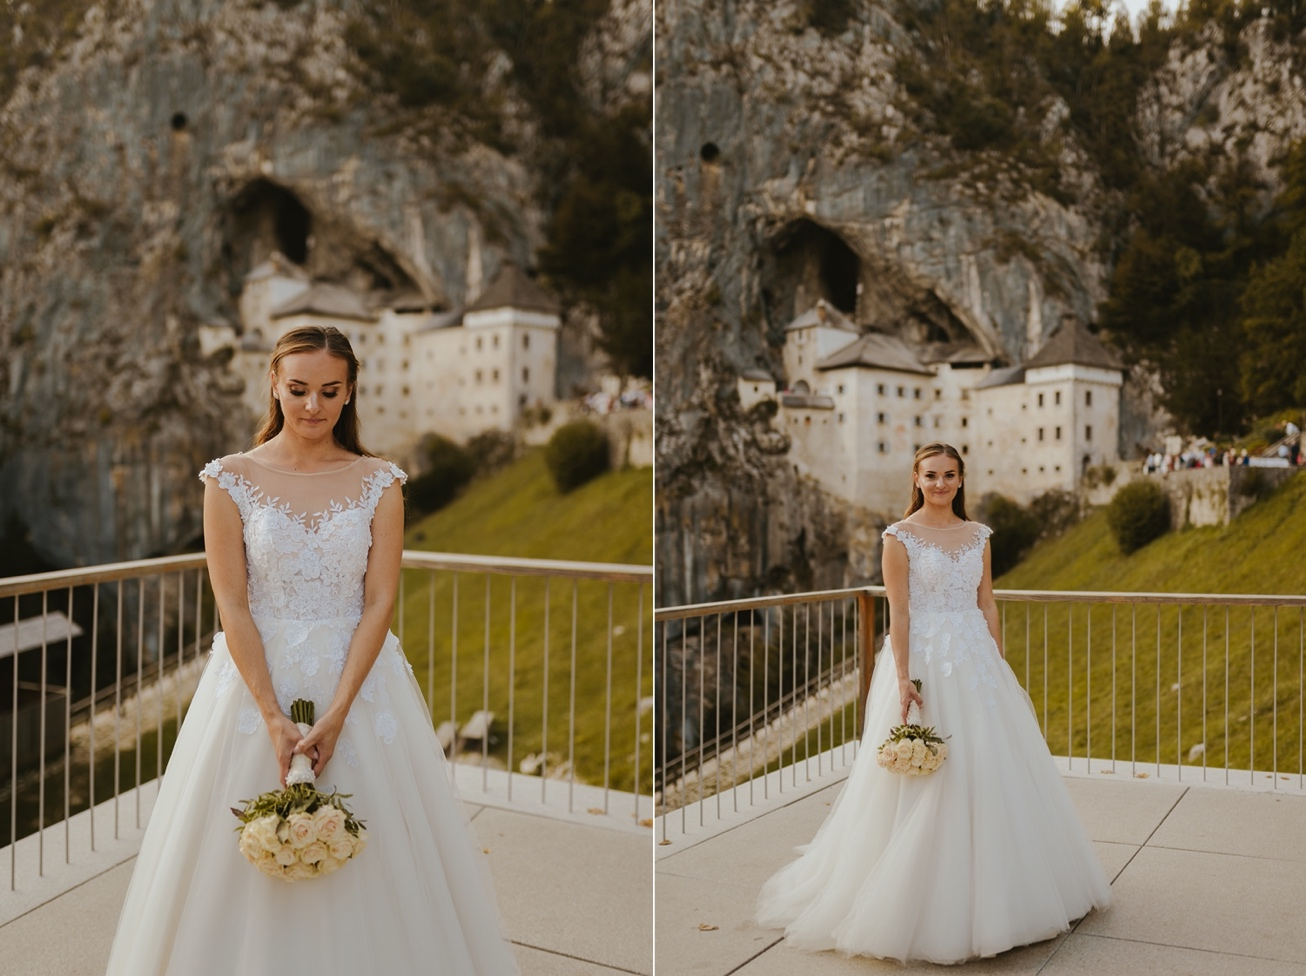 65 postojna castle wedding princess predjama